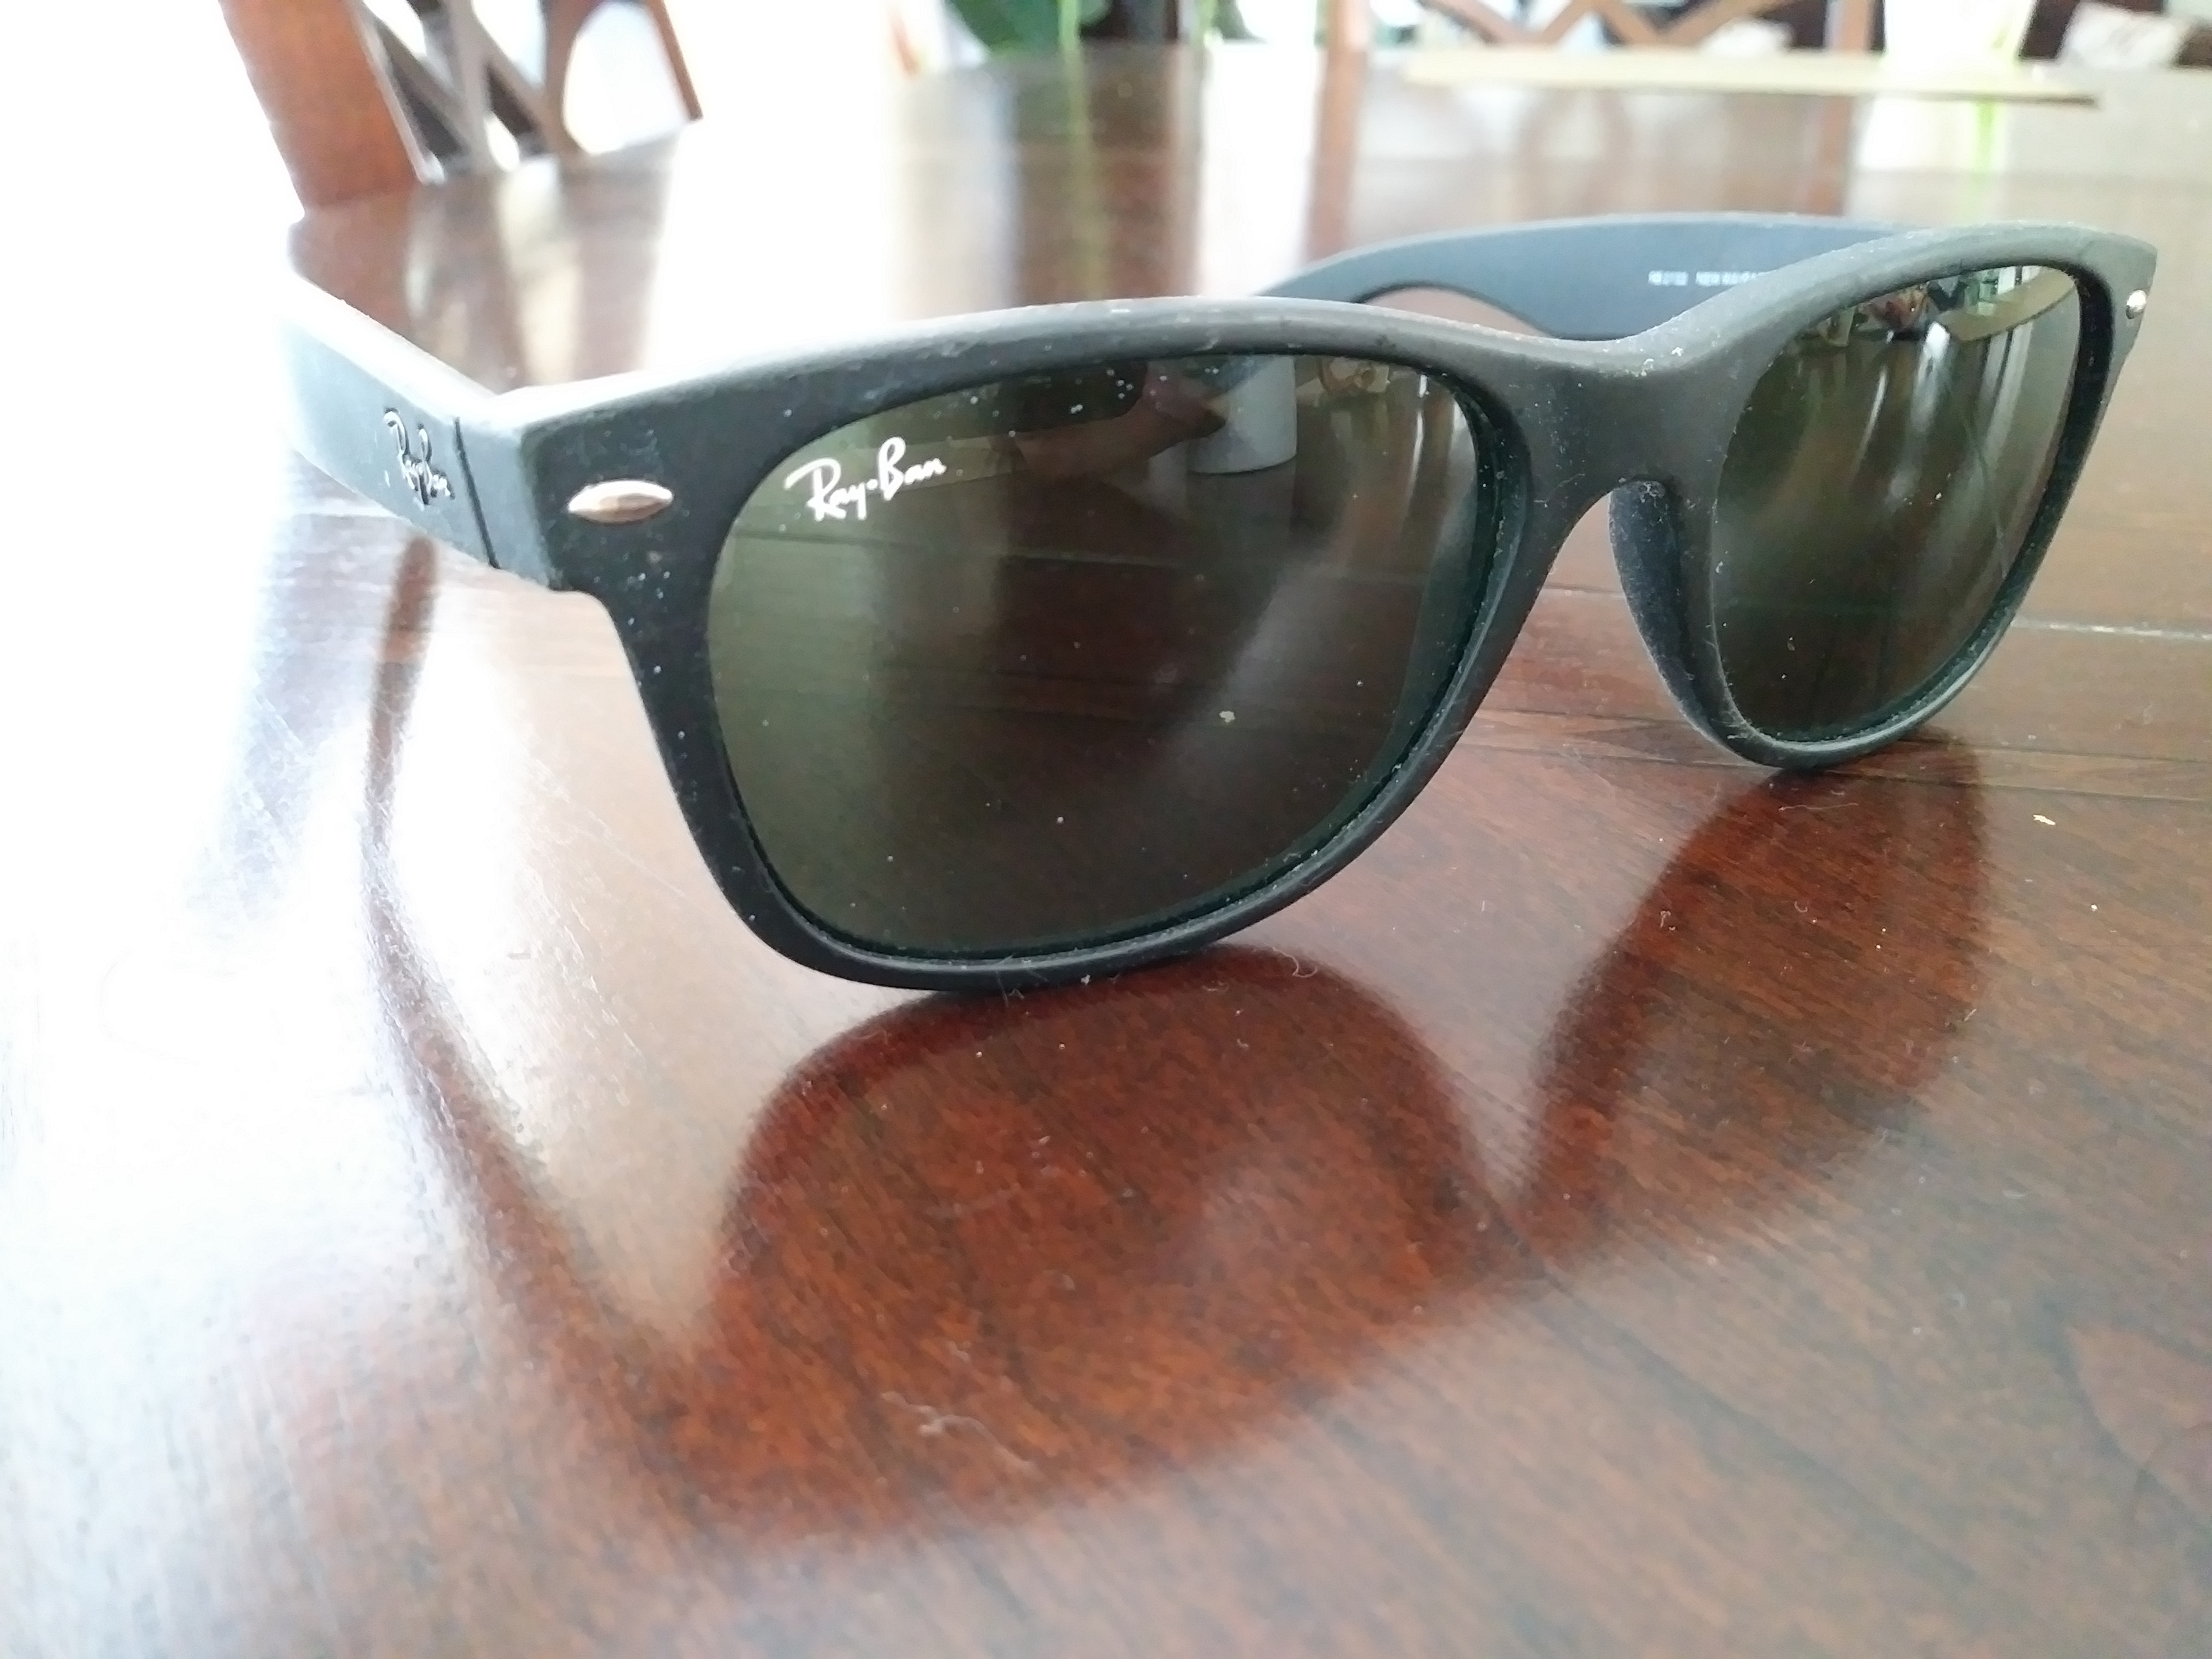 e512a84b784b Old faithful, i put these puppies through a lot, they're meant to be my  driving sunglasses tho, heh